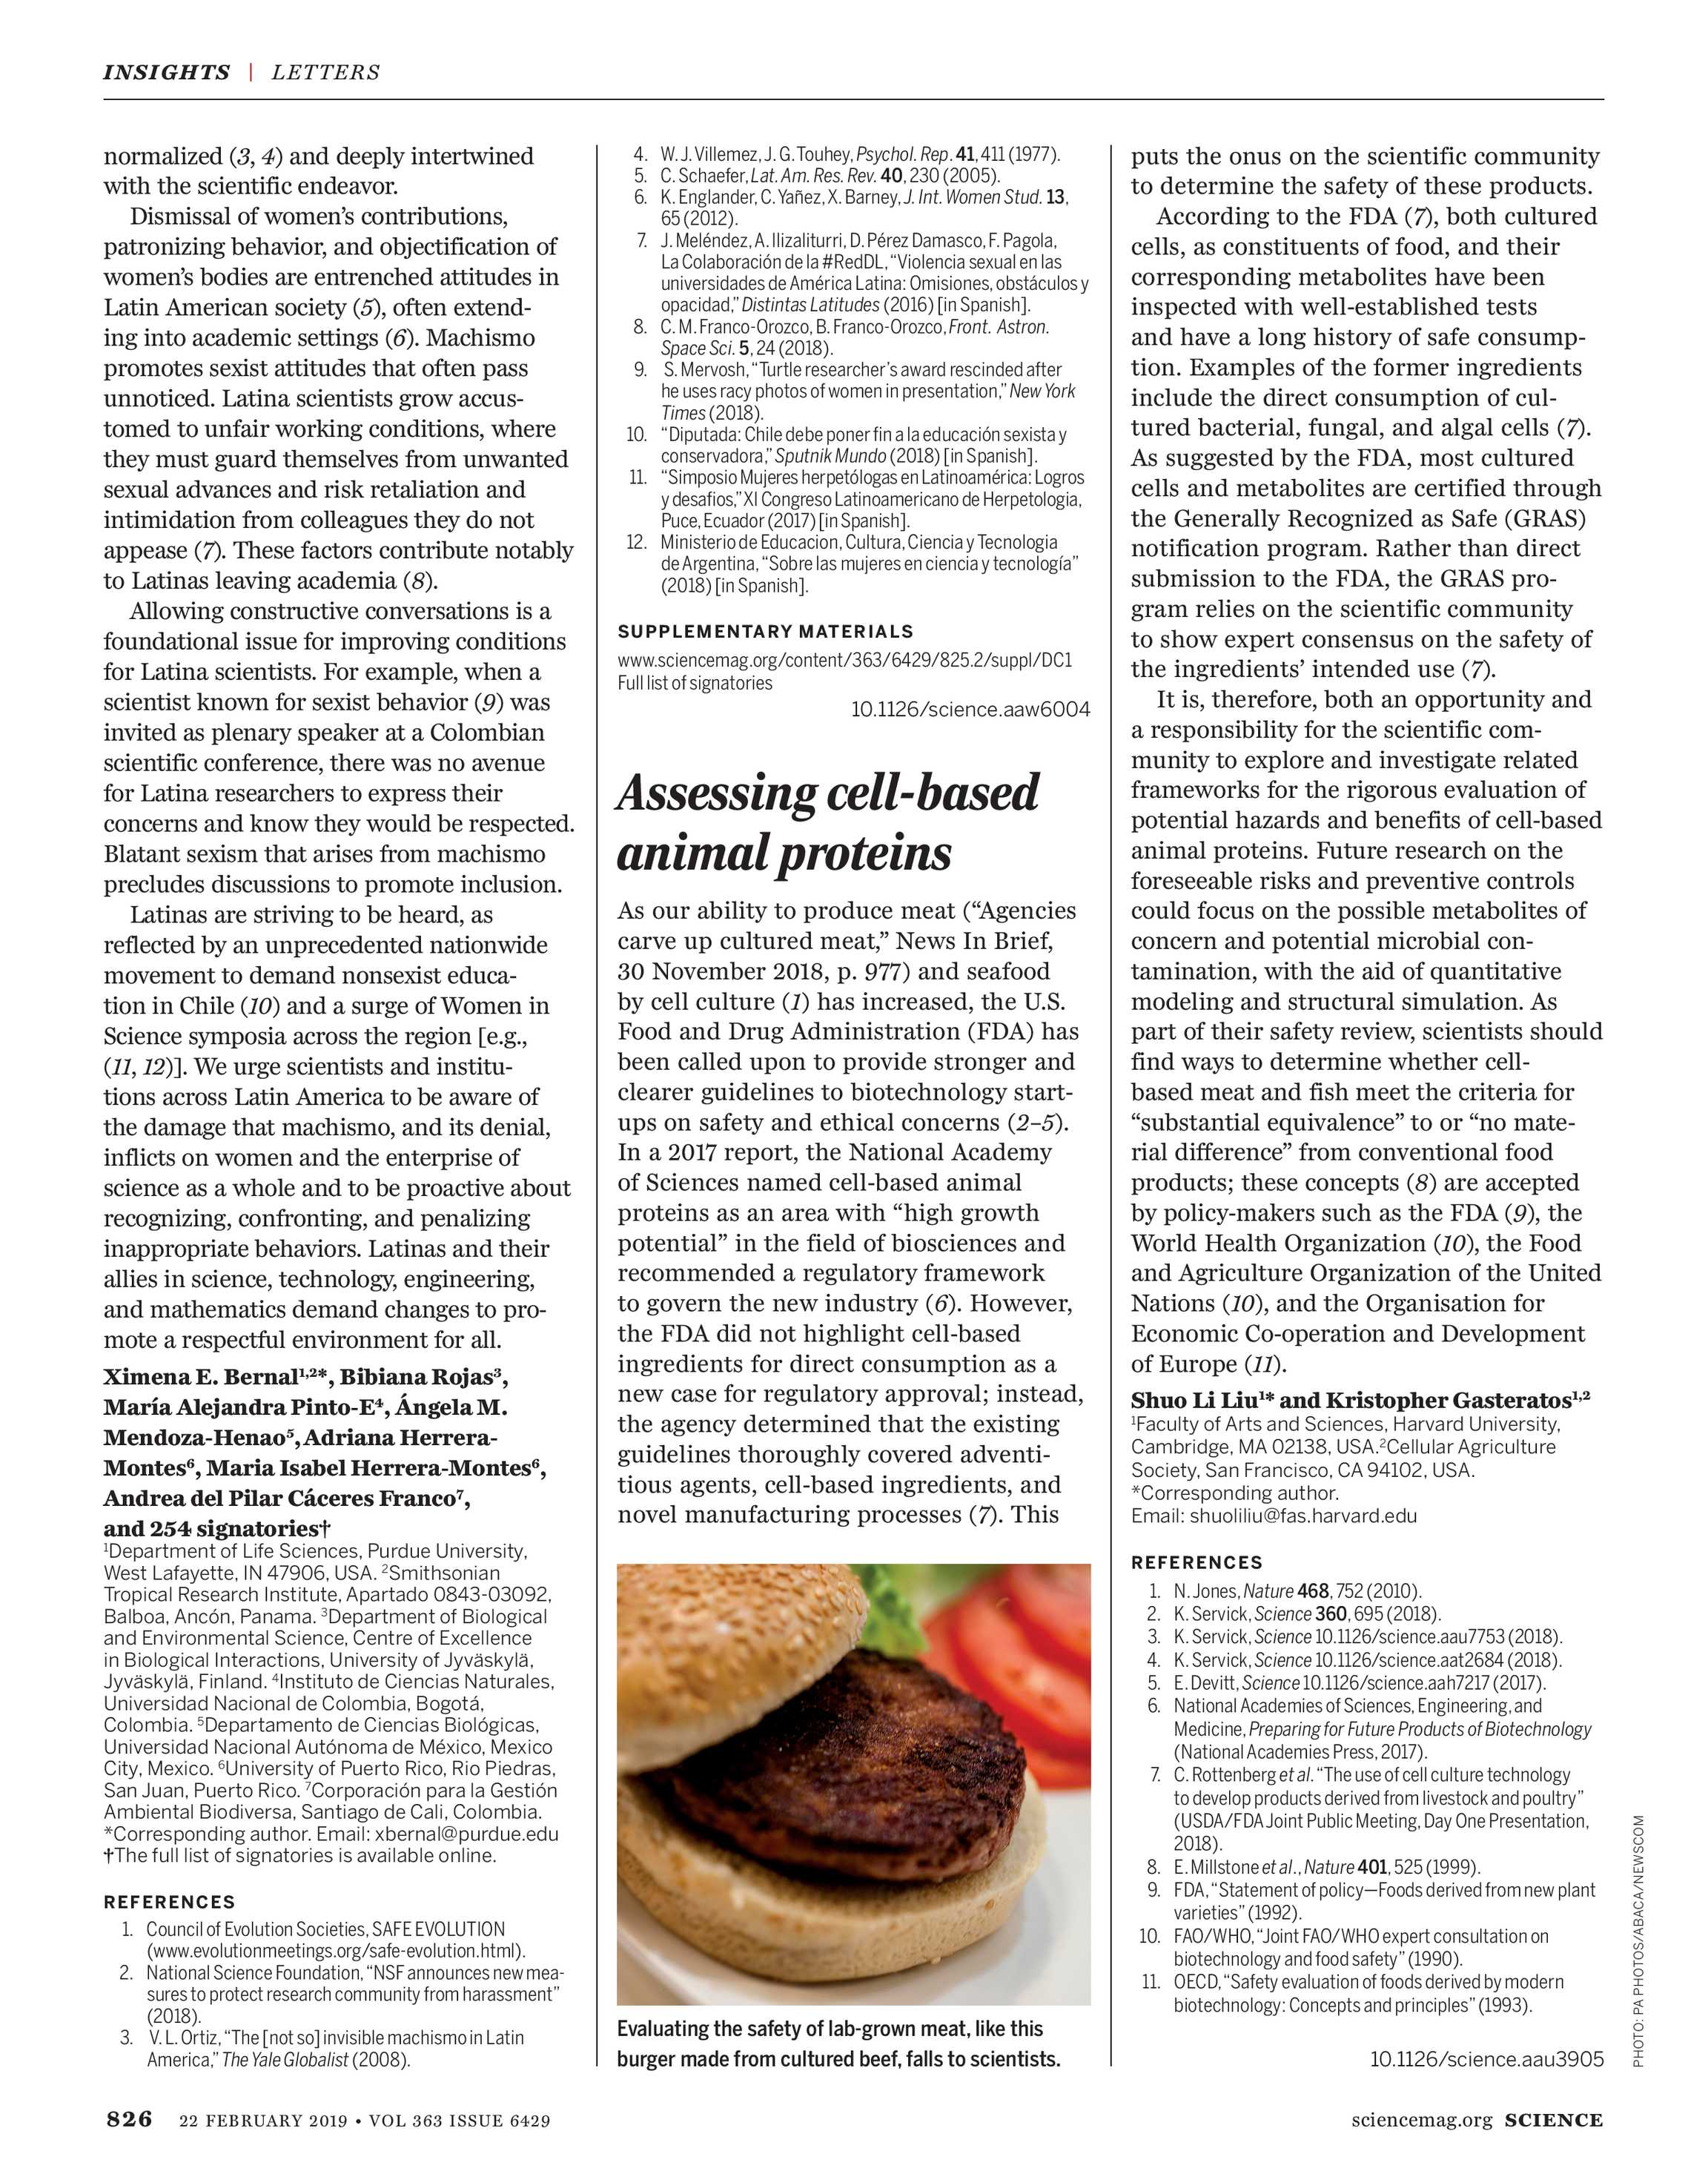 Science Magazine - February 22, 2019 - page 825